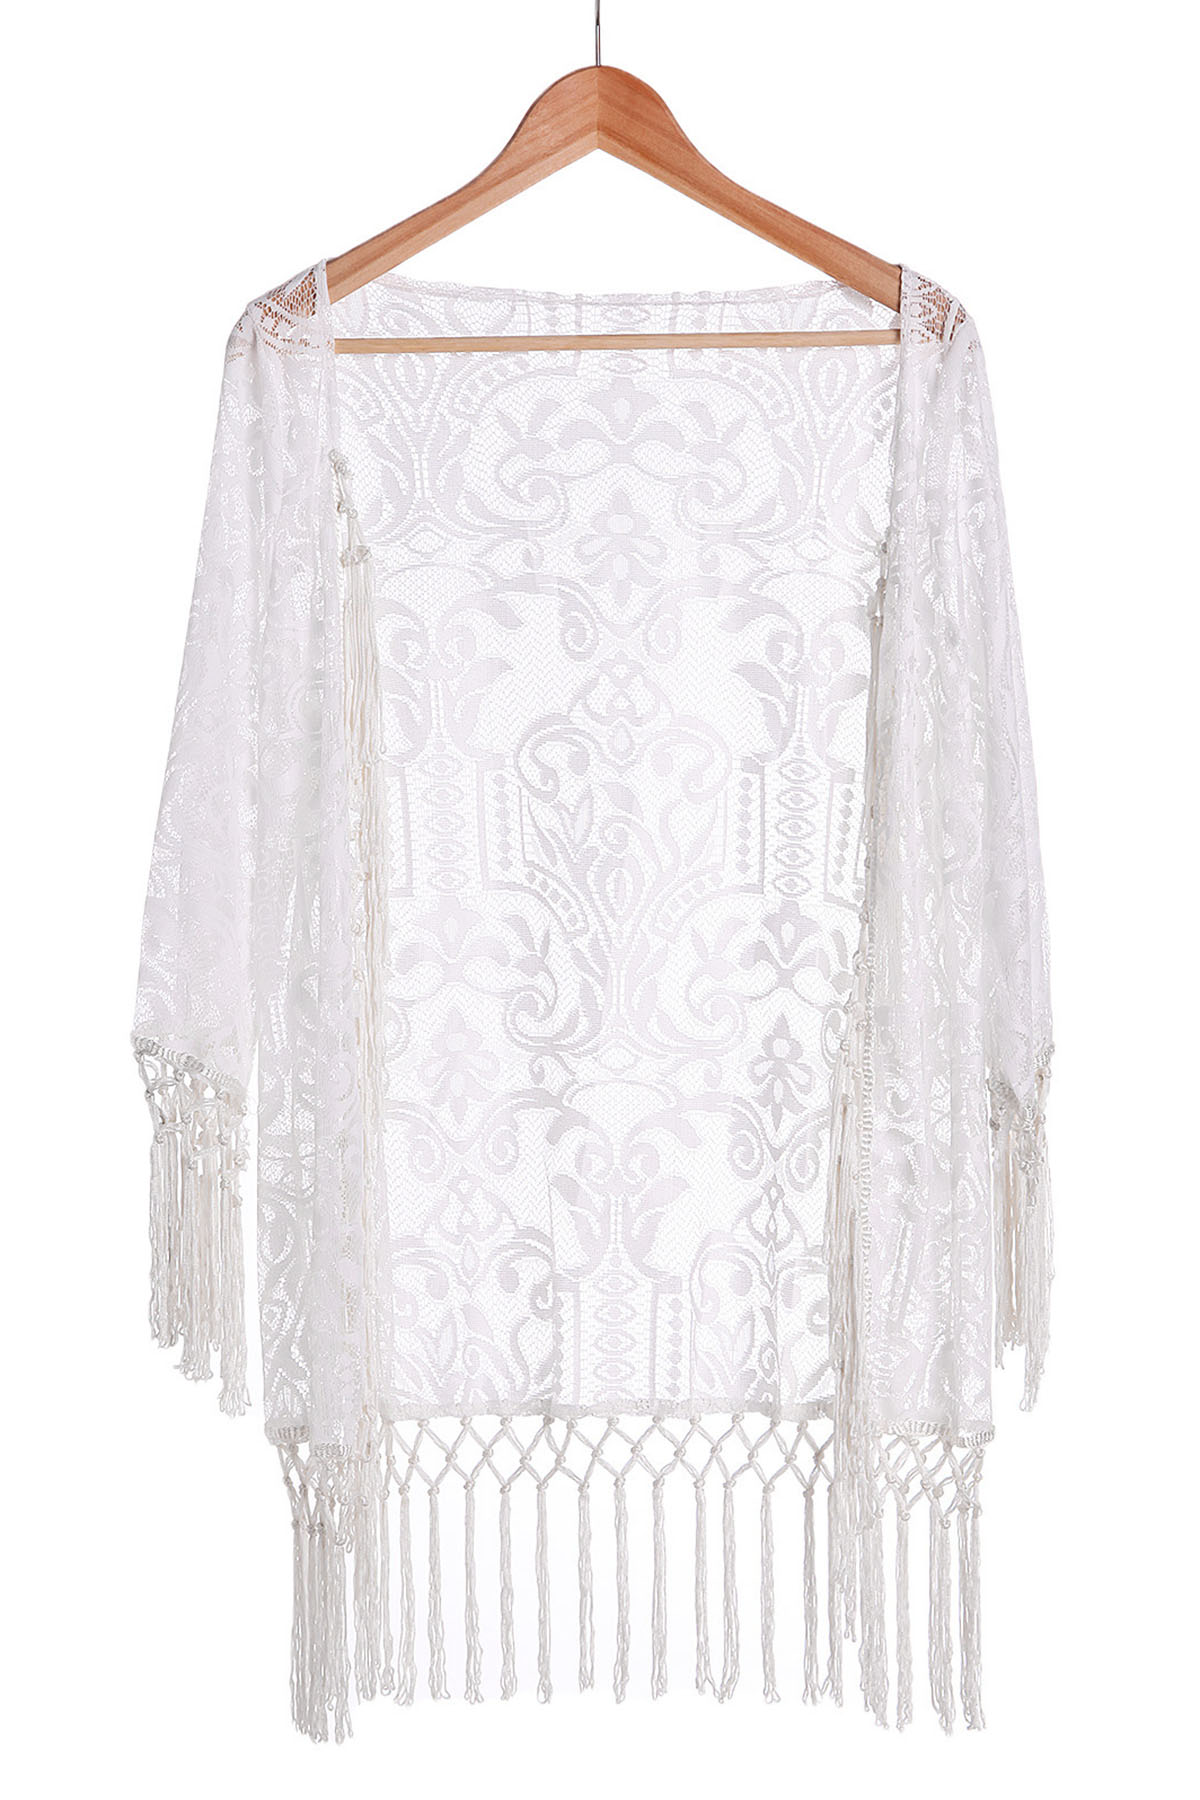 Tassels Spliced Lace White Sunscreen Blouse